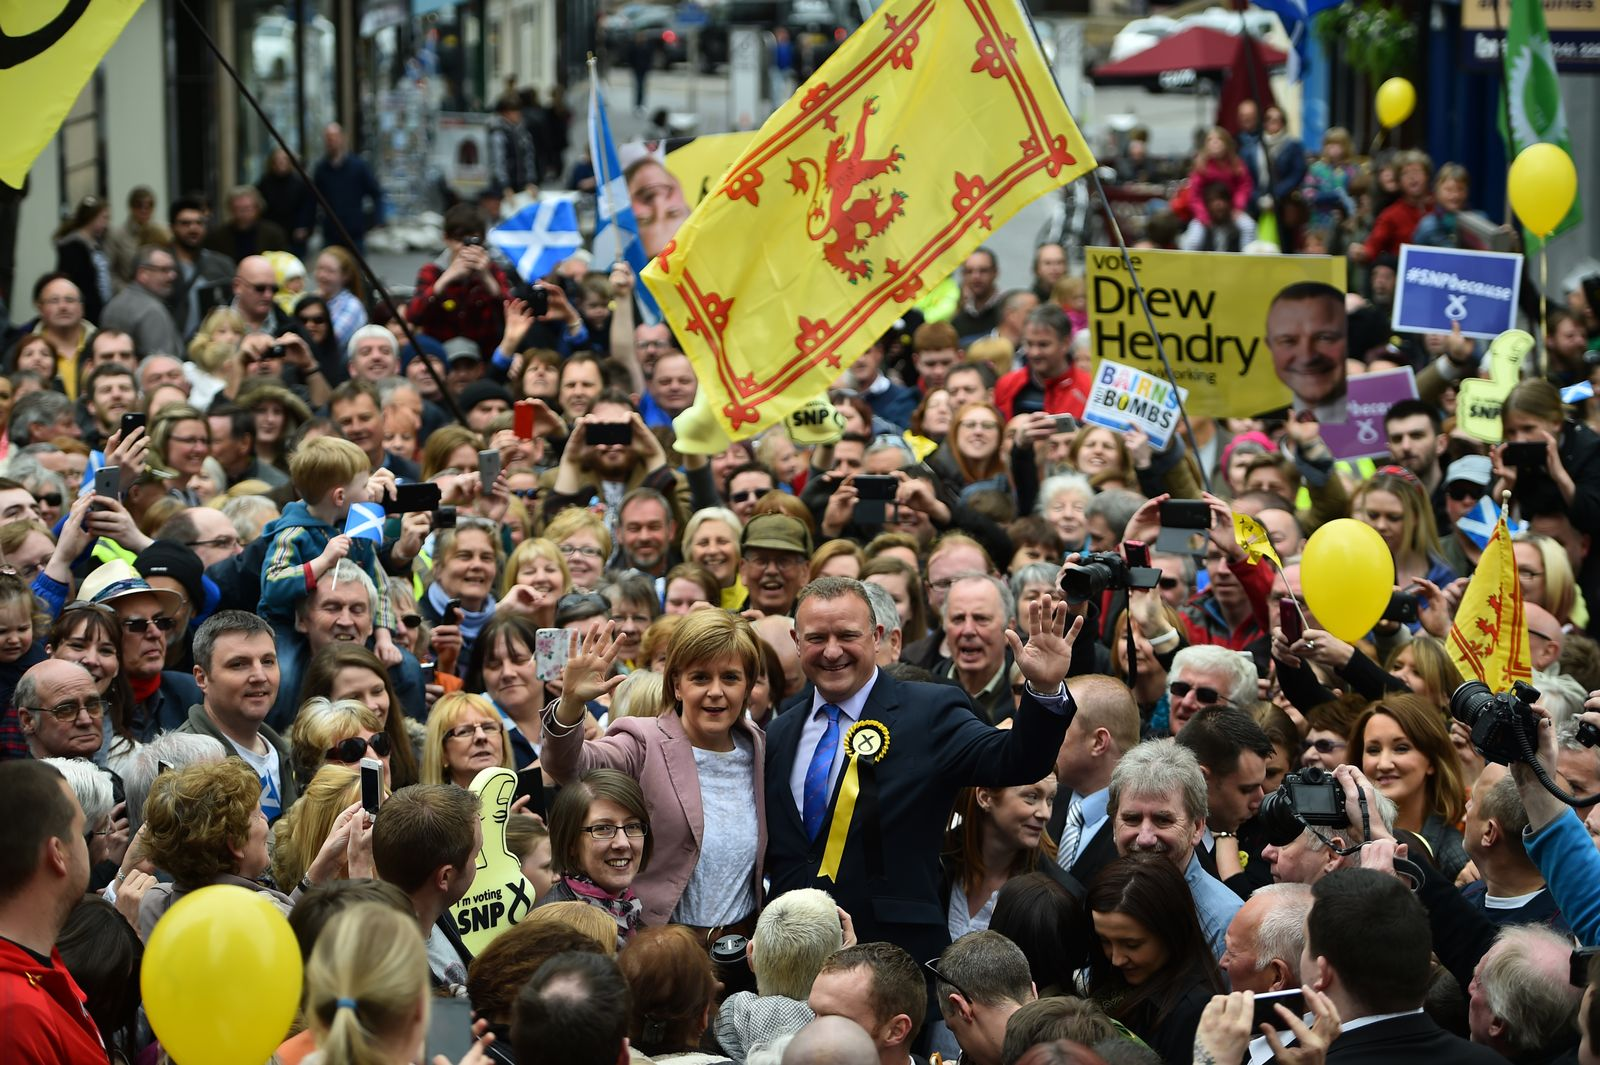 Nicola Sturgeon and Scottish National Party councillor and Council Leader Drew Hendry